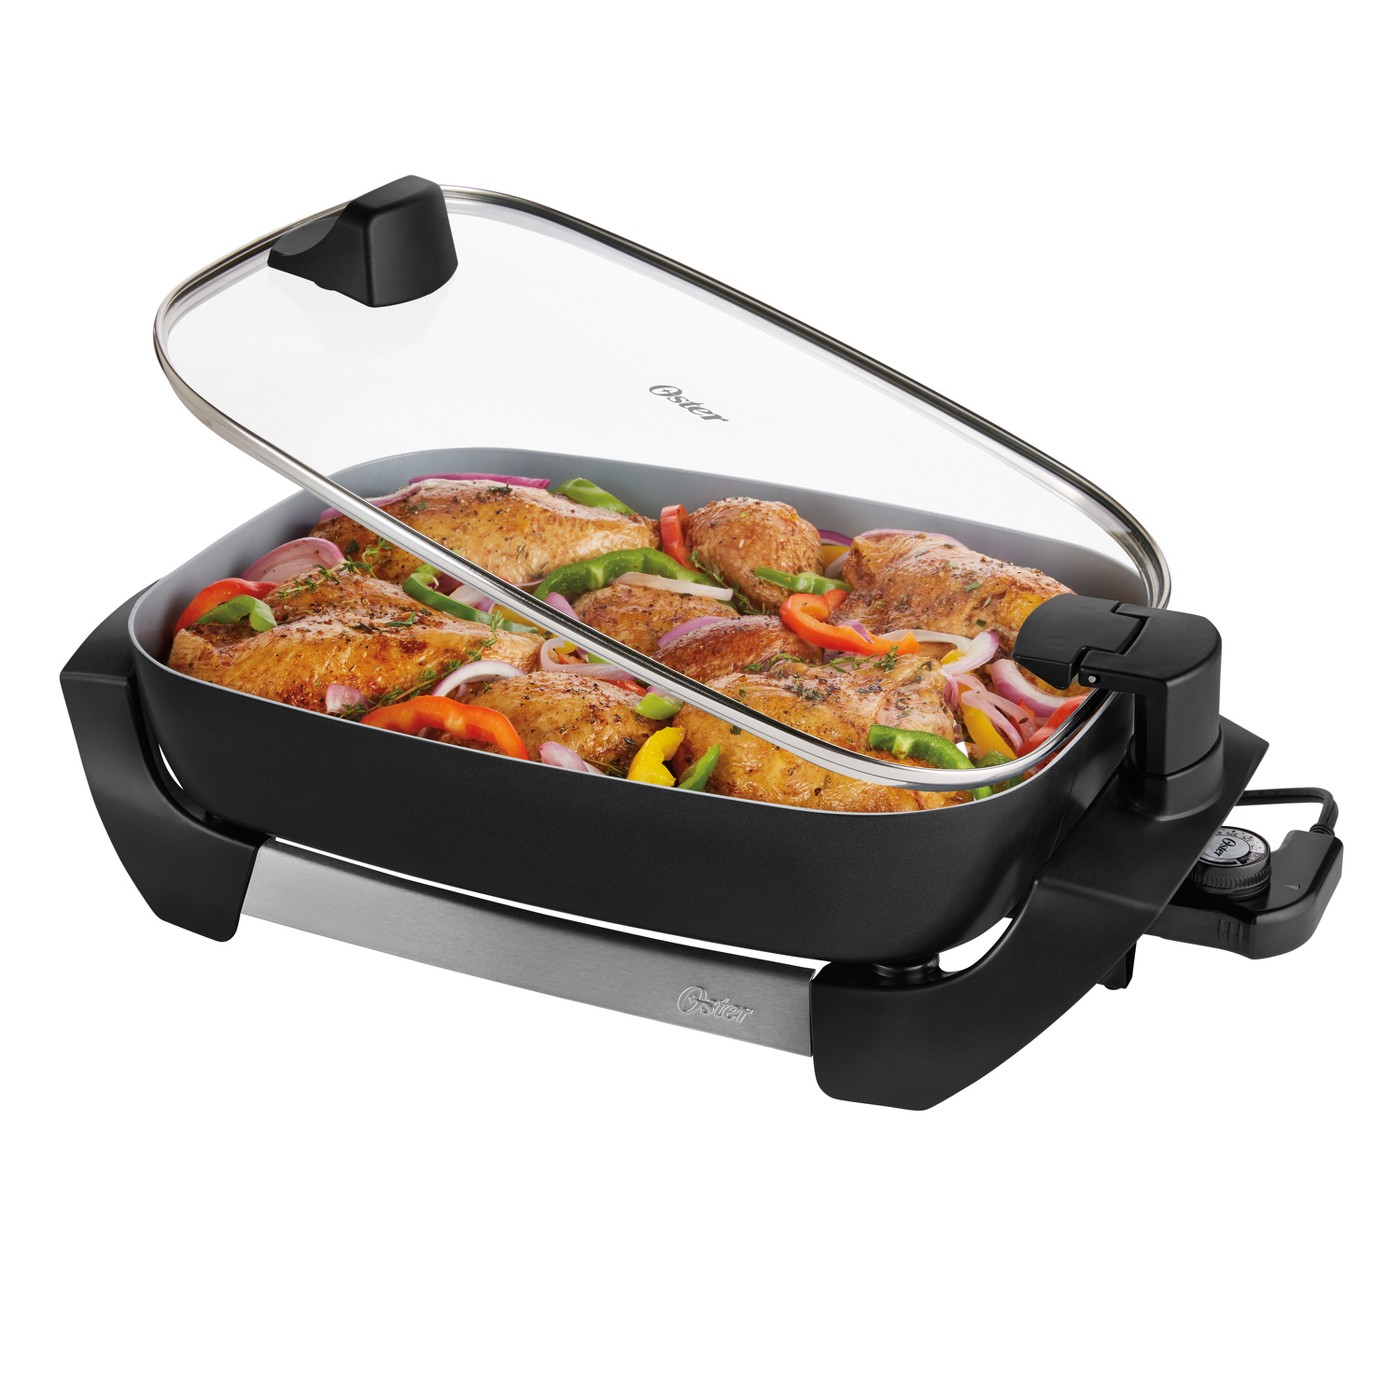 """Oster DuraCeramic 16"""" Electric Skillet With Lift & Serve Hinged Lid - Black"""